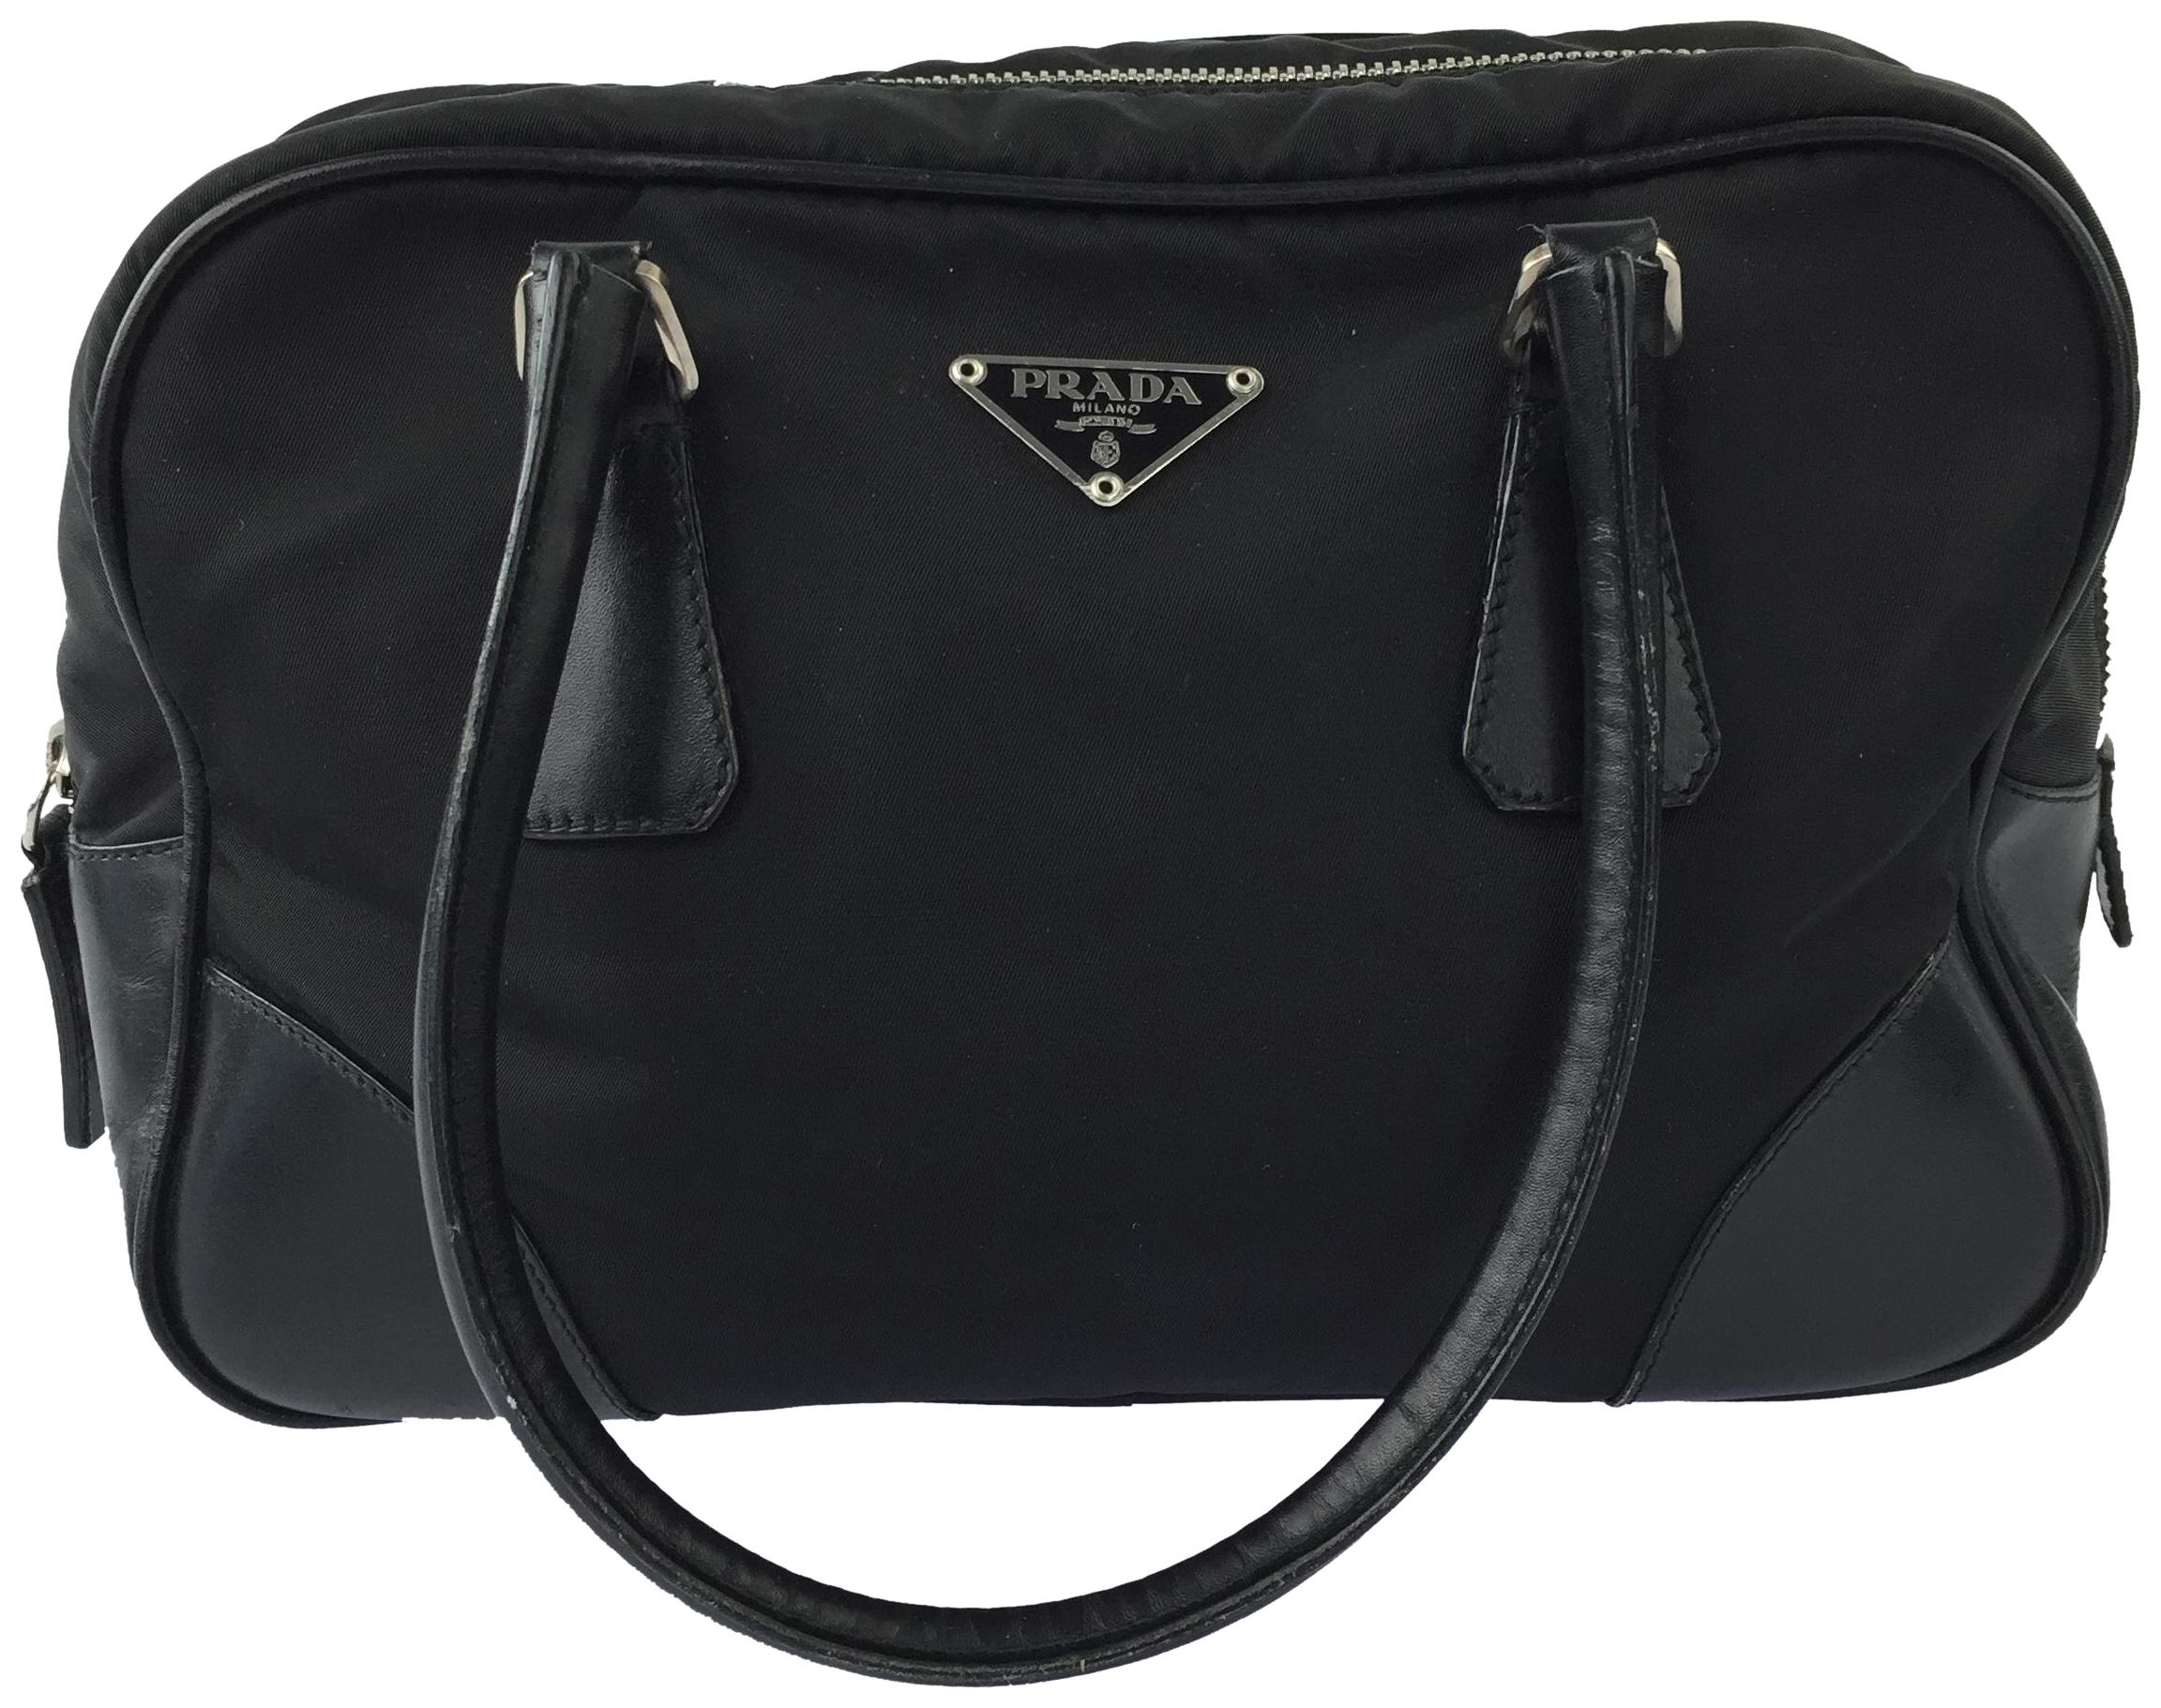 988f3bda98 ... sweden prada vela logo nylon tote satchel in black 355c0 cd1d6